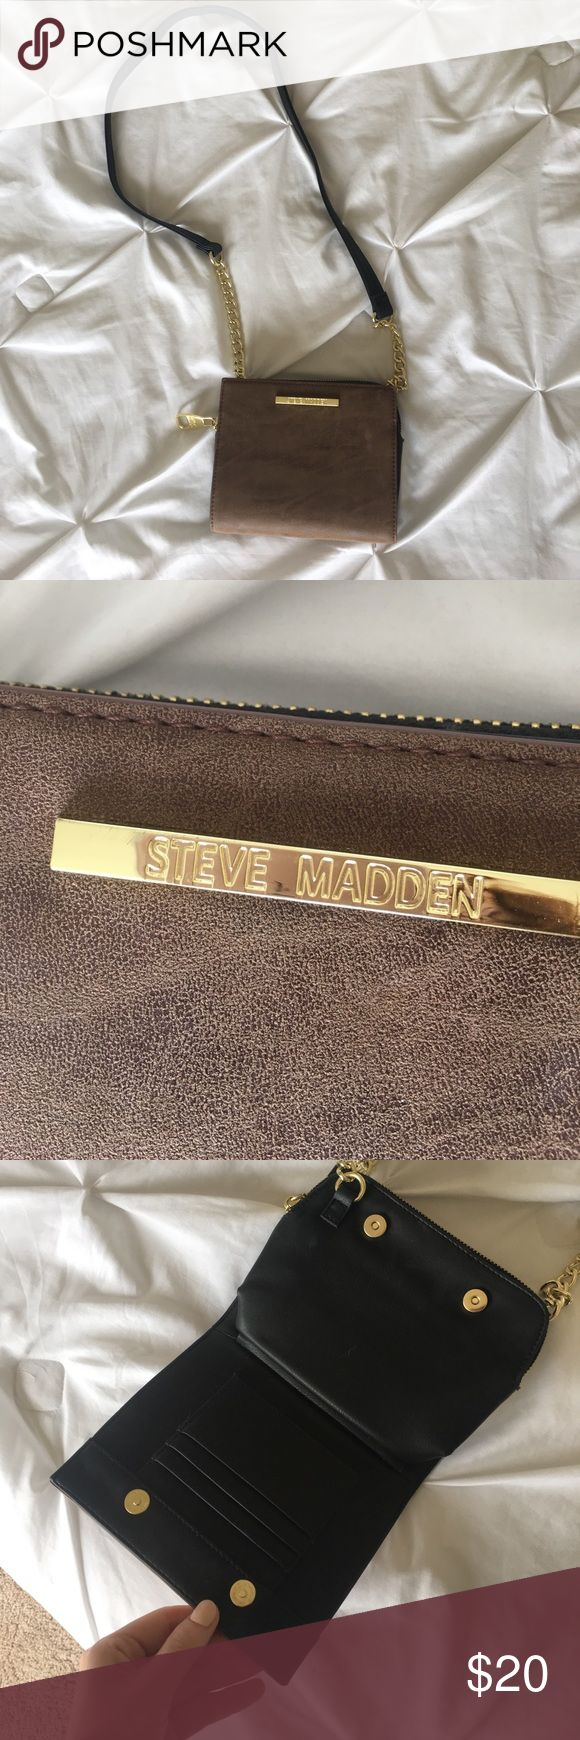 Steve Madden Purse Authentic Steve Madden Purse. This is in GREAT condition and I only used it once! Lost of storage and perfect for every occasion. Steve Madden Bags Crossbody Bags